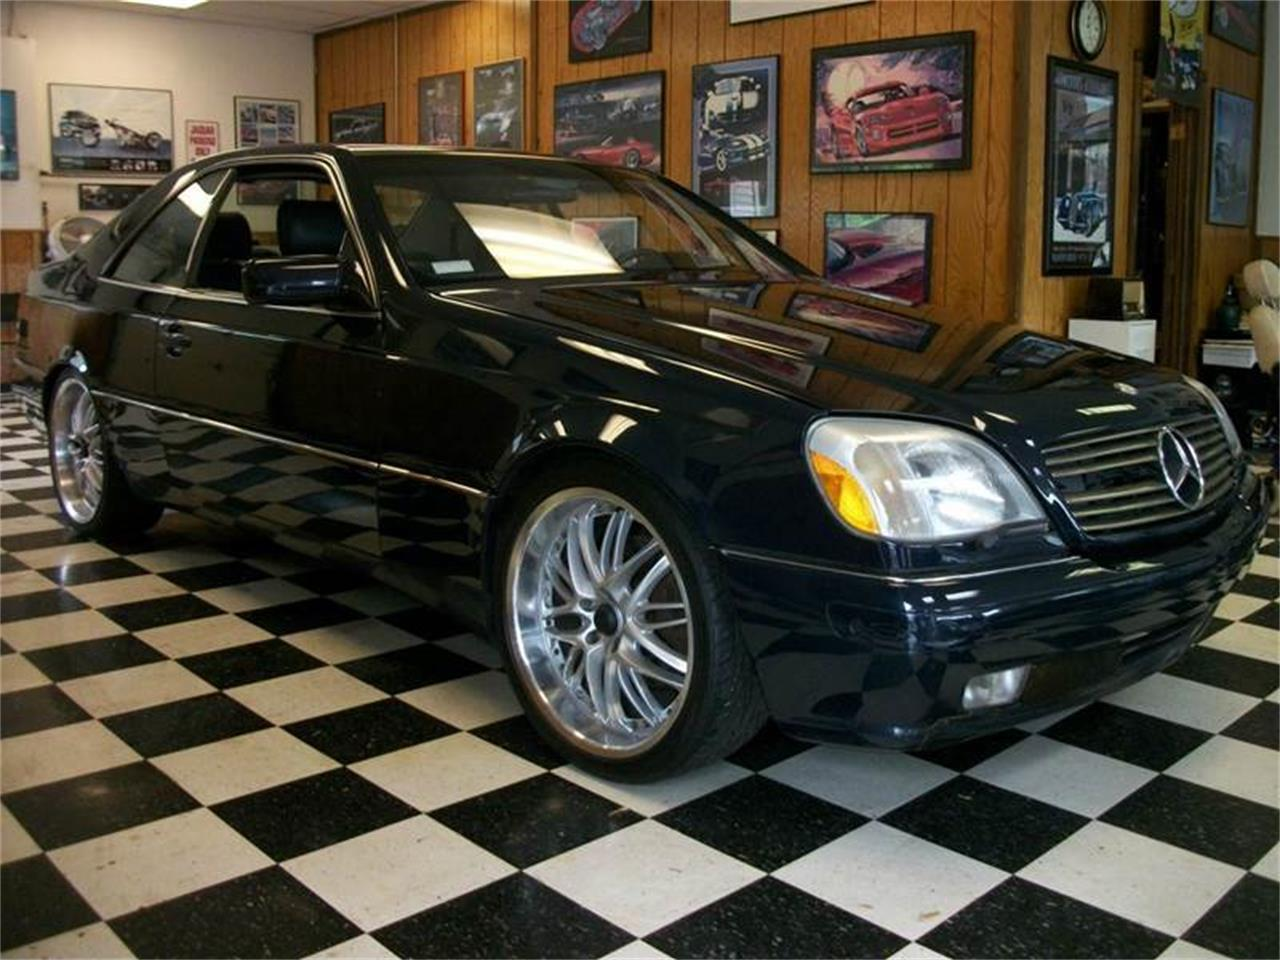 Large Picture of 1997 Mercedes-Benz S-Class located in Michigan - $2,995.00 Offered by Yono Brokerage Services, Inc. - L2YK